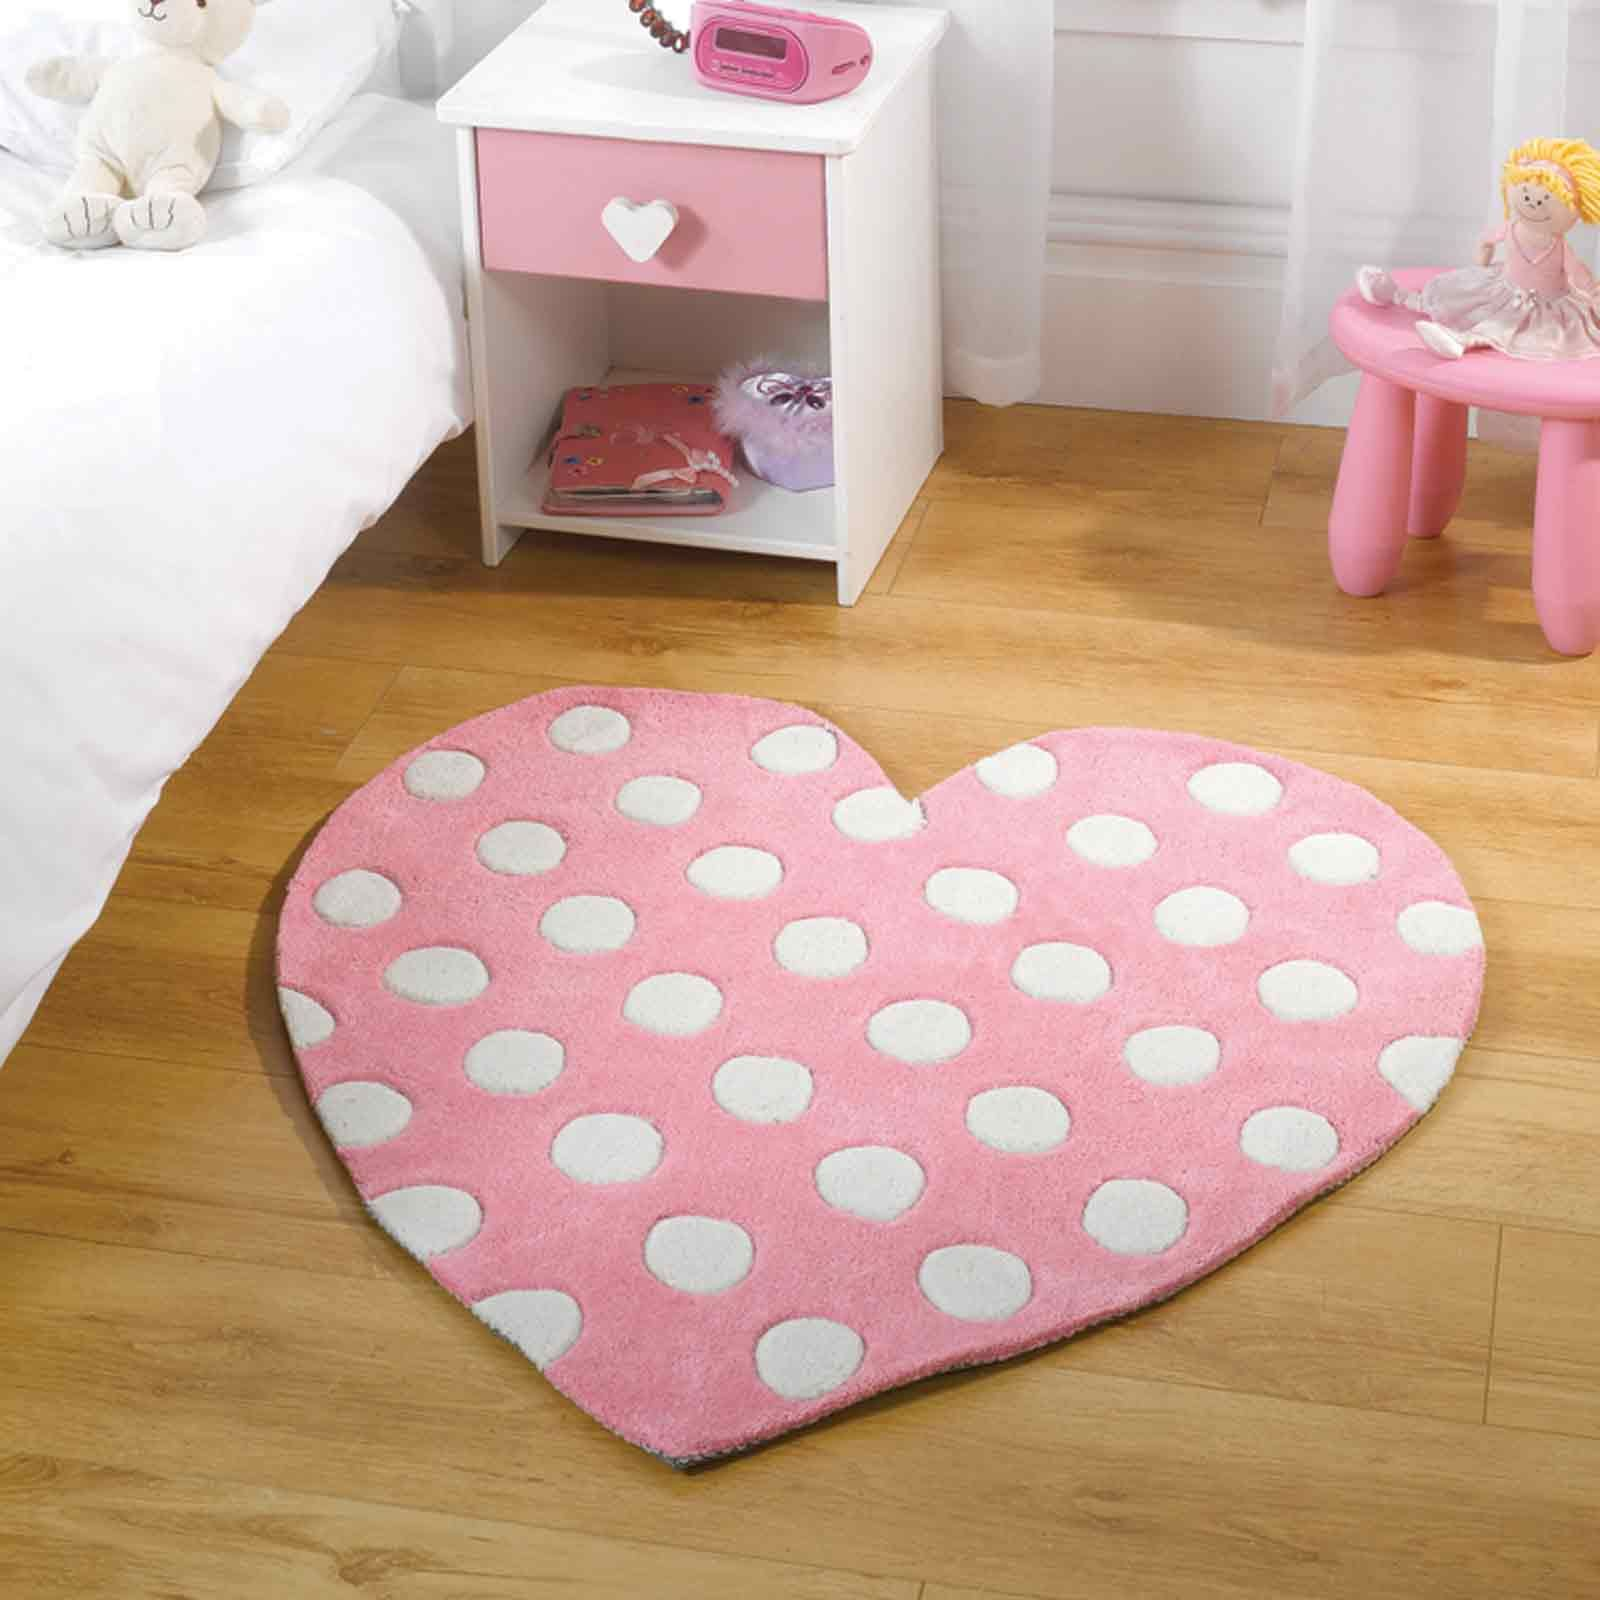 kinderzimmer for girls or pink modern teppiche s kids teppich carpet princess en rug playmat rugs fuchsia and fairy carpets children a